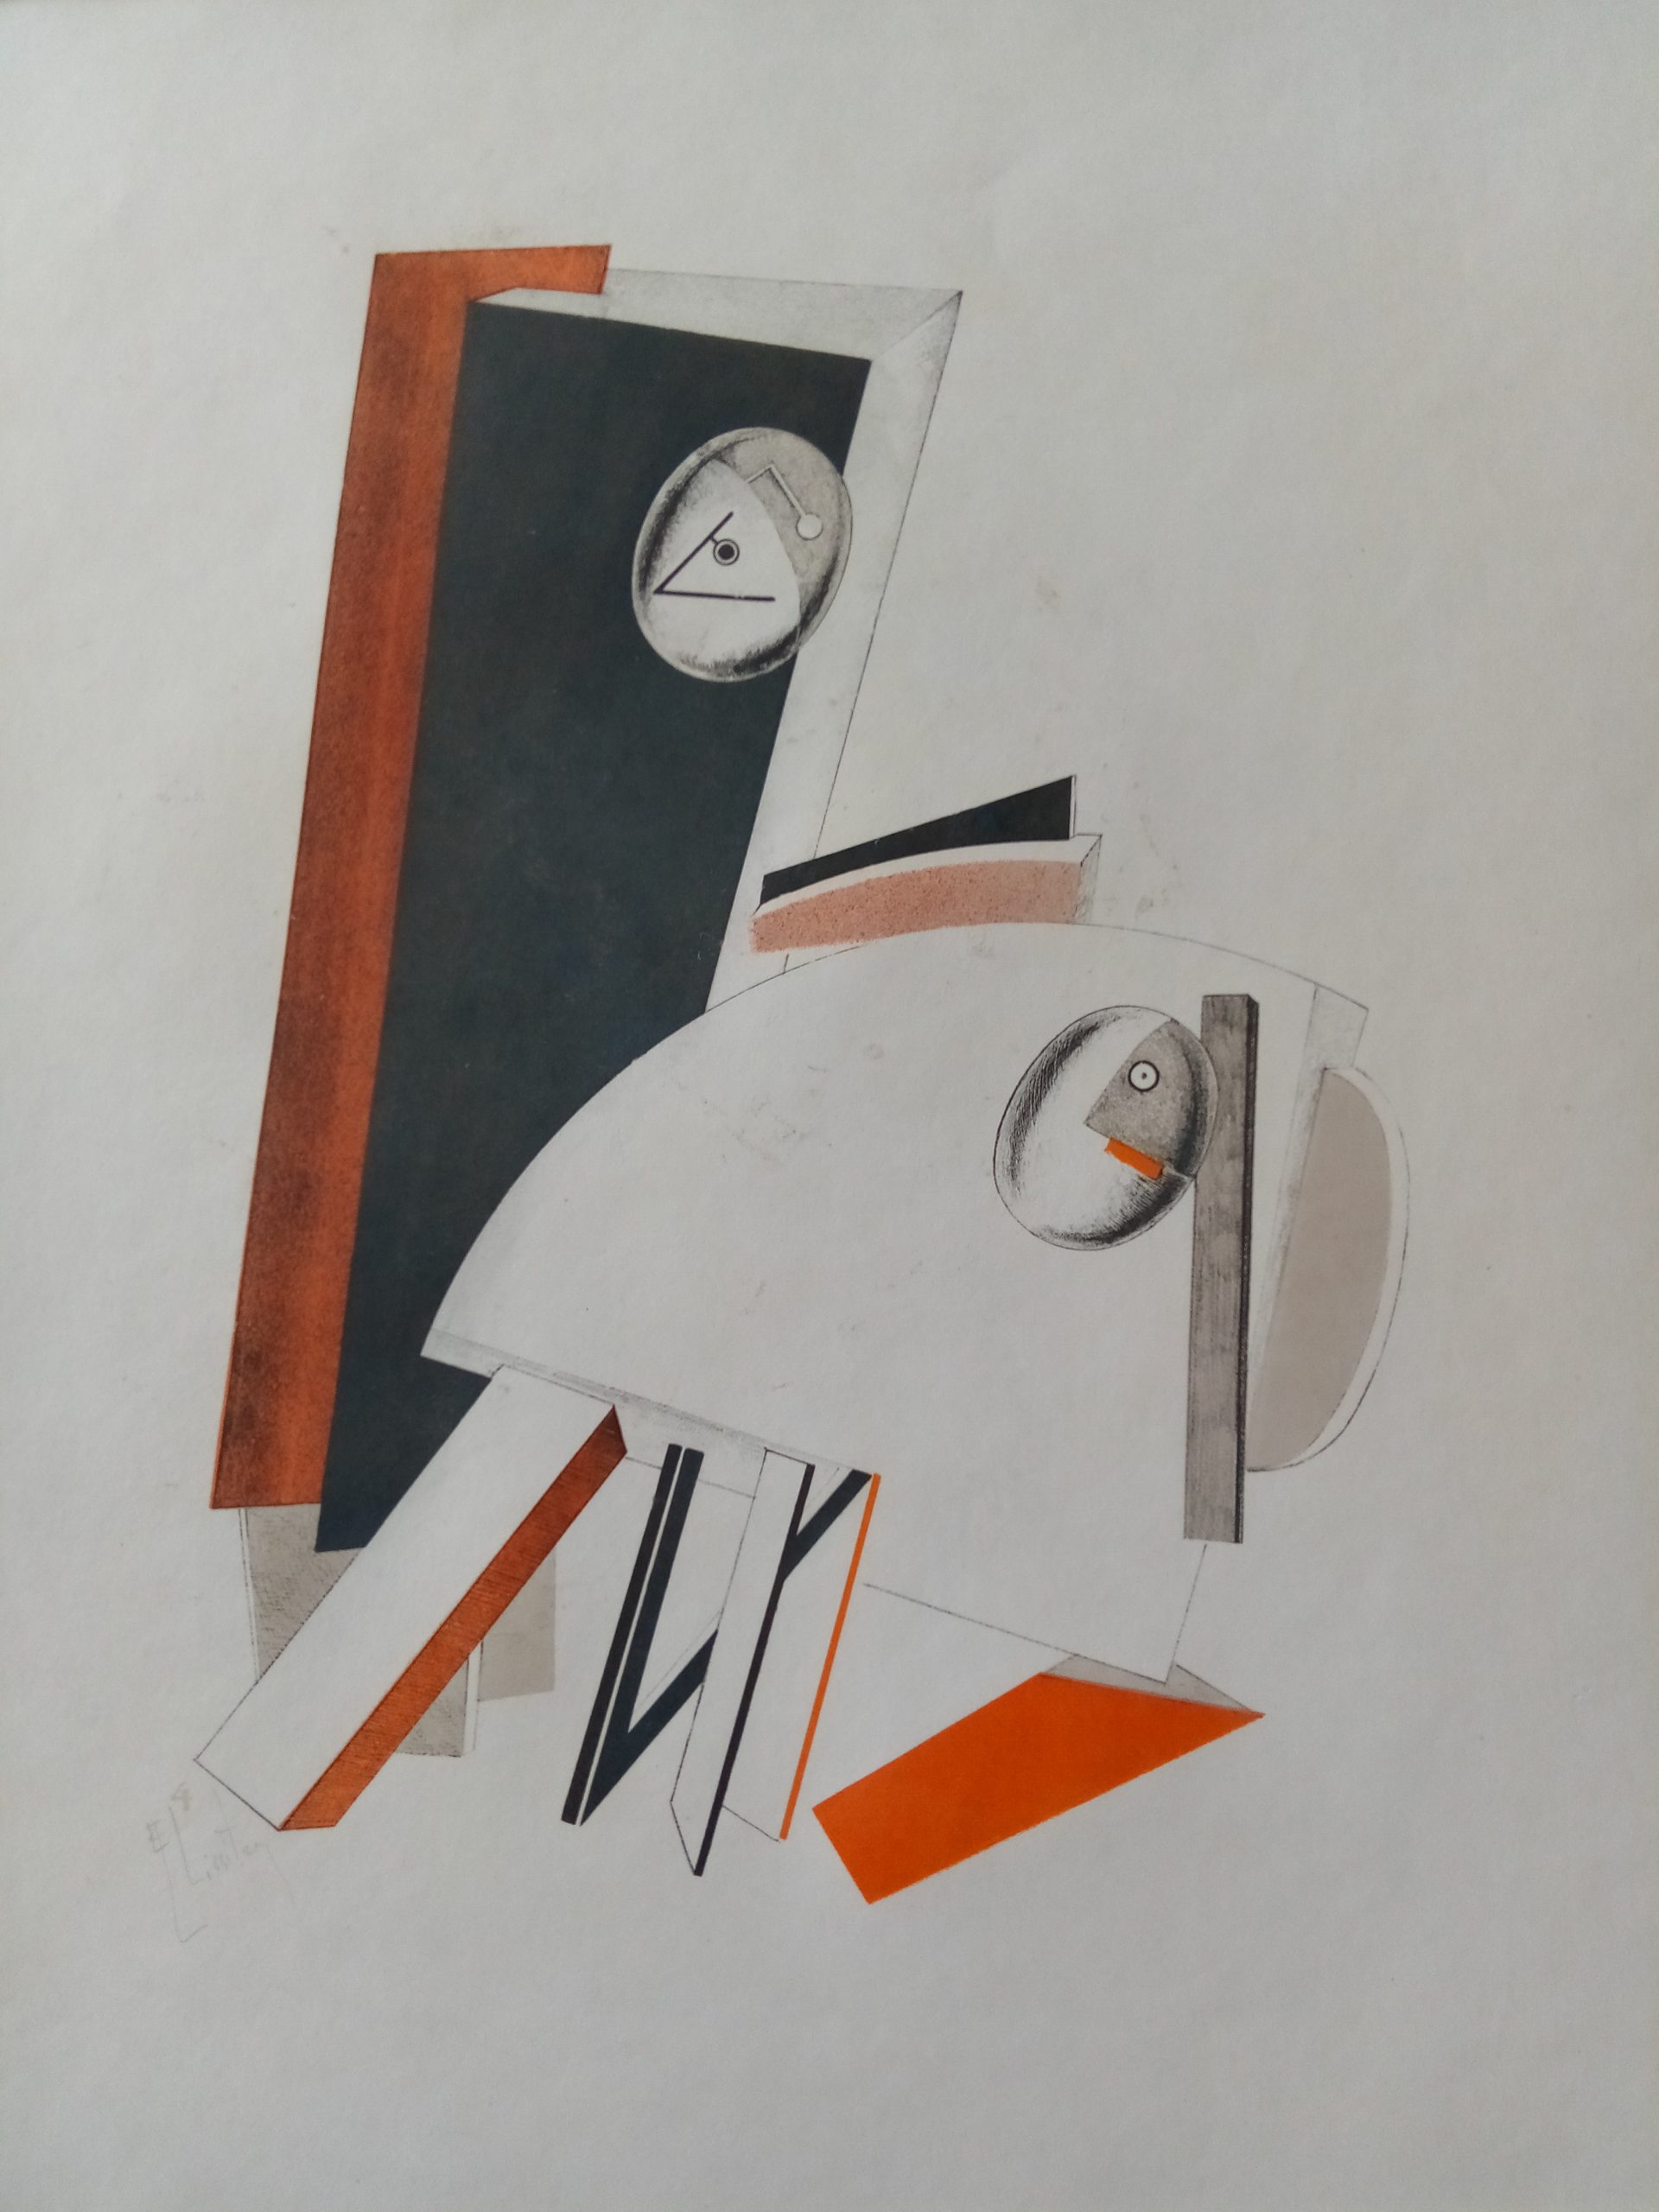 Victory Over The Sun: Anxious People by El Lissitzky